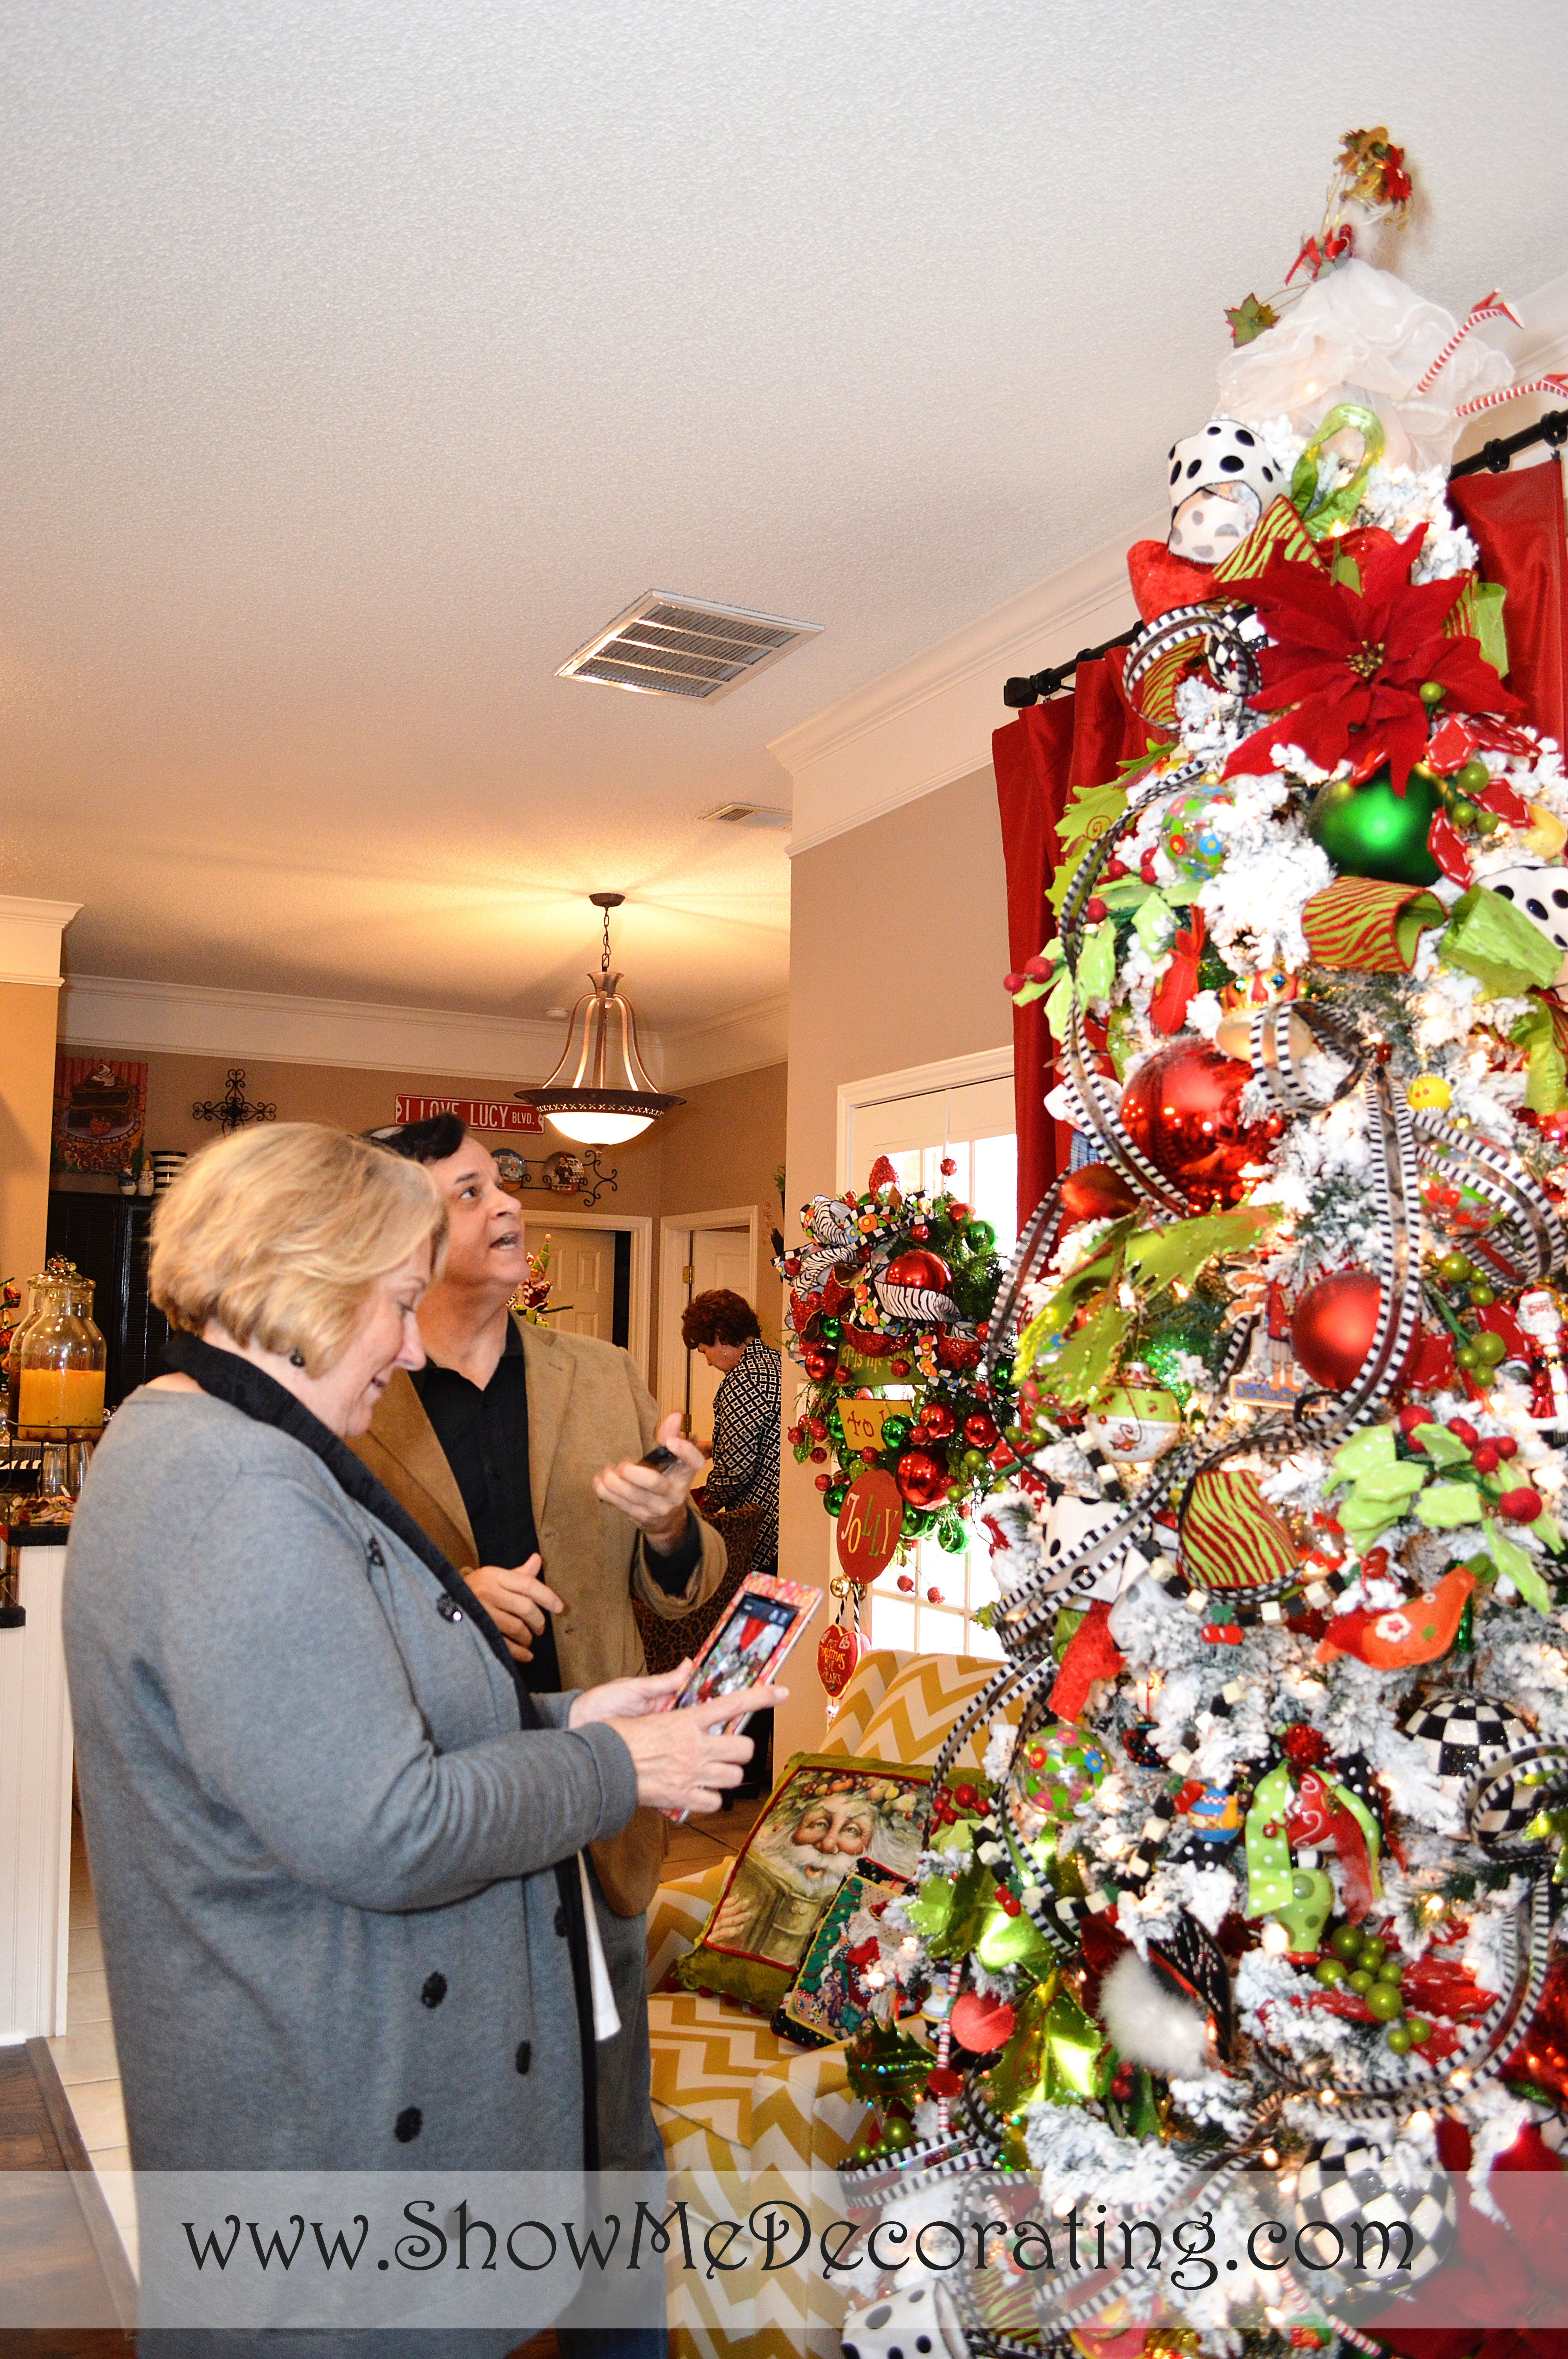 Show me a merry and bright christmas brunch show me decorating - Decorating shows ...